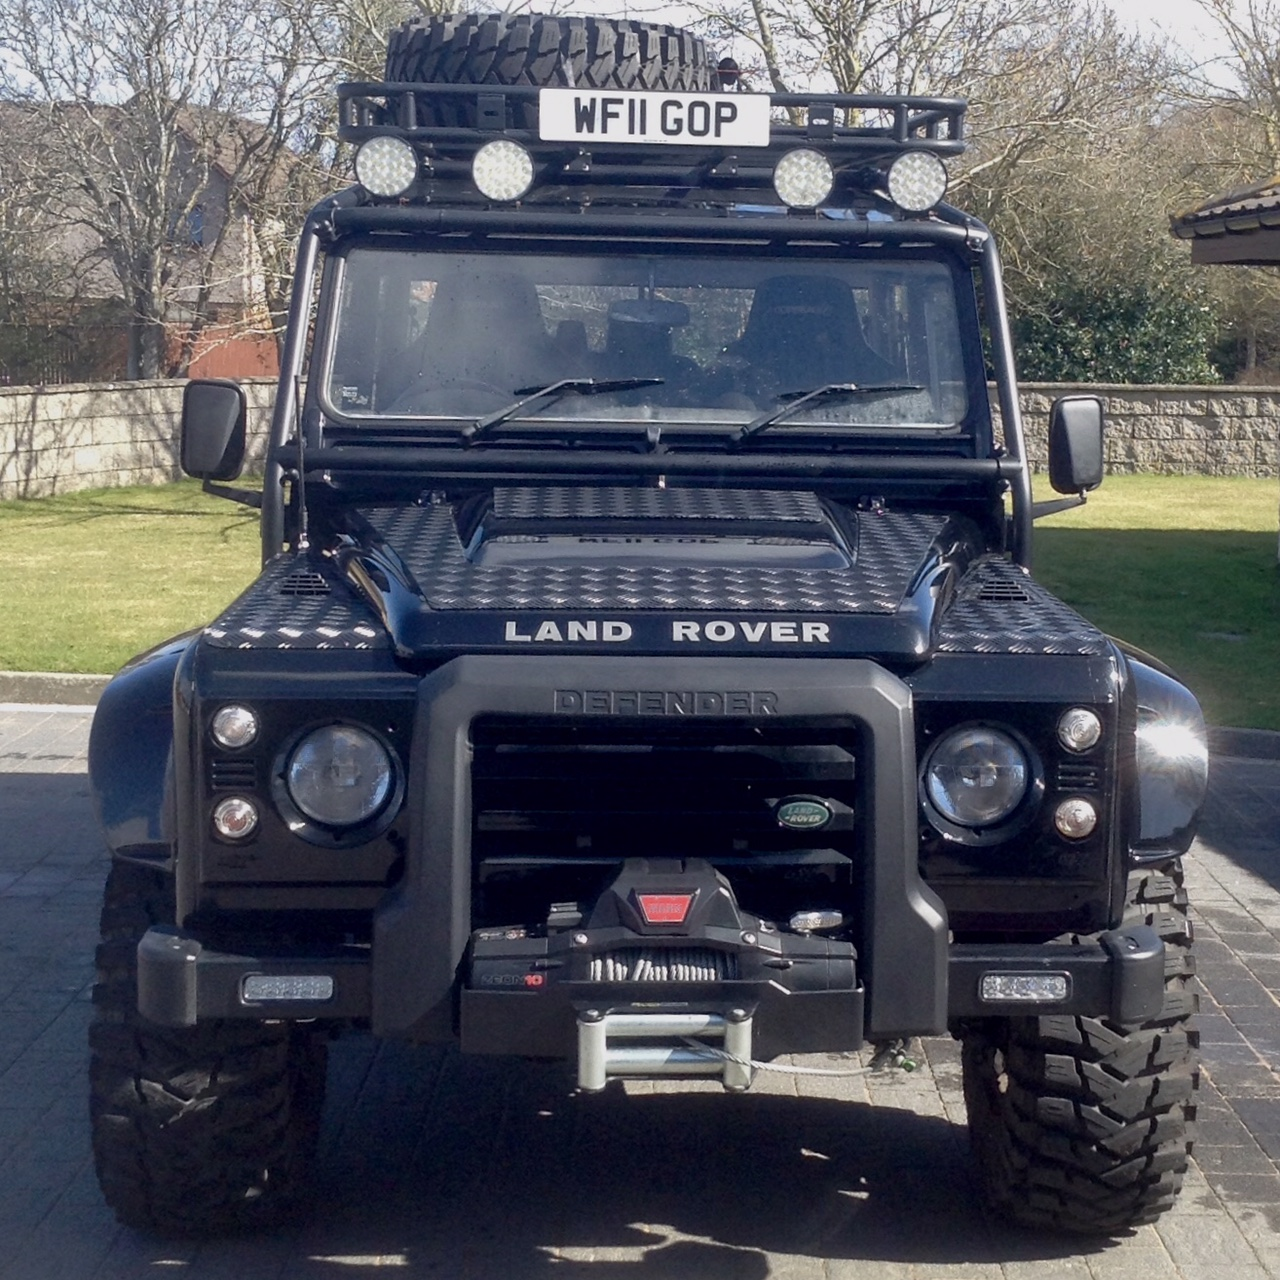 Land Rover Defender Clutch Slipping Car Tdci Bond Effect Edition Double Cab Pick Up